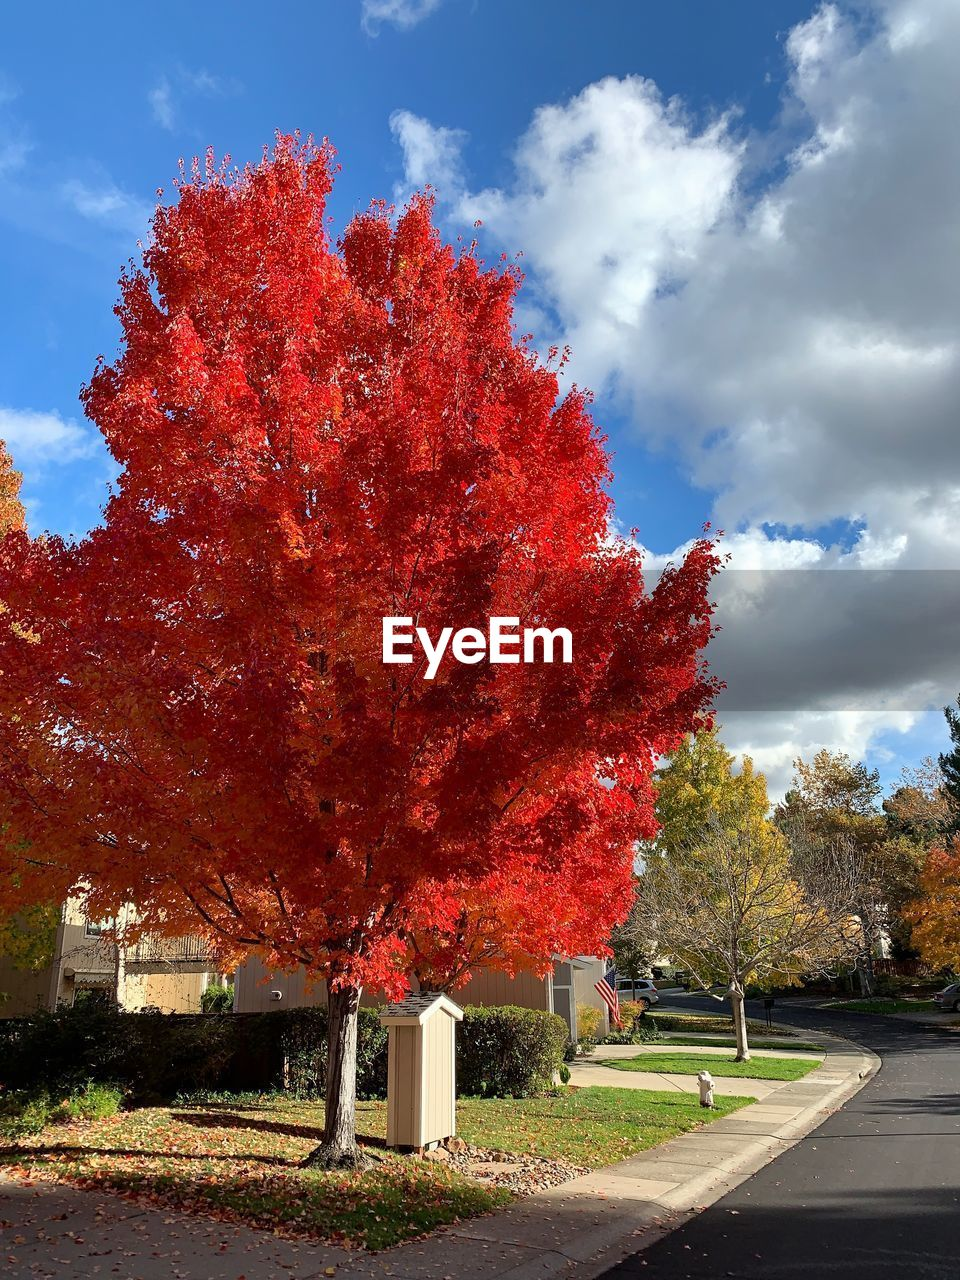 tree, plant, cloud - sky, change, autumn, sky, nature, red, growth, no people, day, beauty in nature, outdoors, sunlight, orange color, road, flowering plant, transportation, flower, street, fall